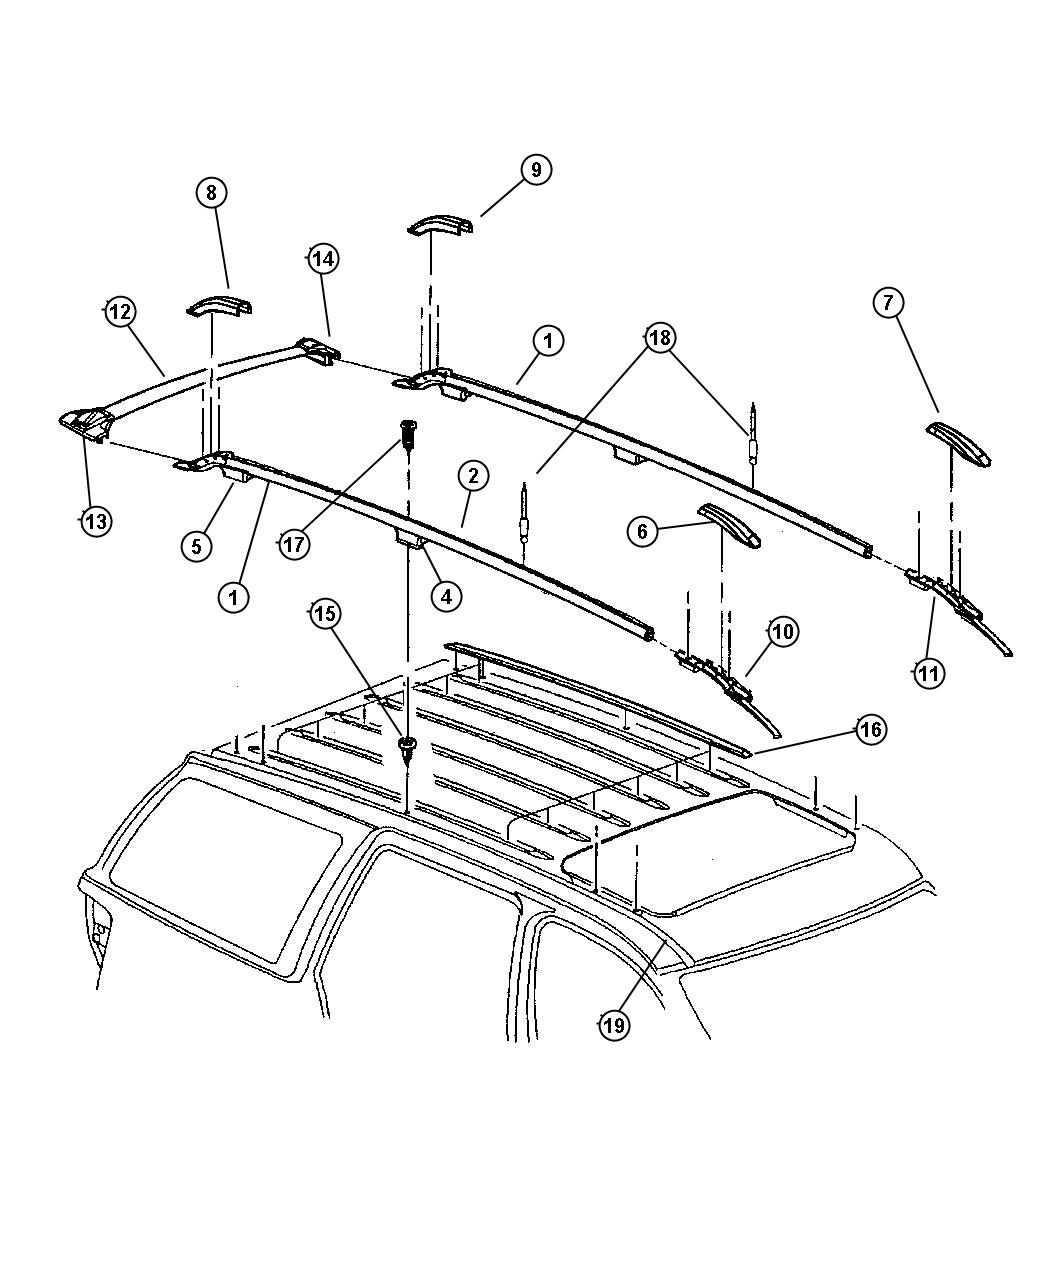 2001 Jeep Grand Cherokee Roof Rack Pictures to Pin on